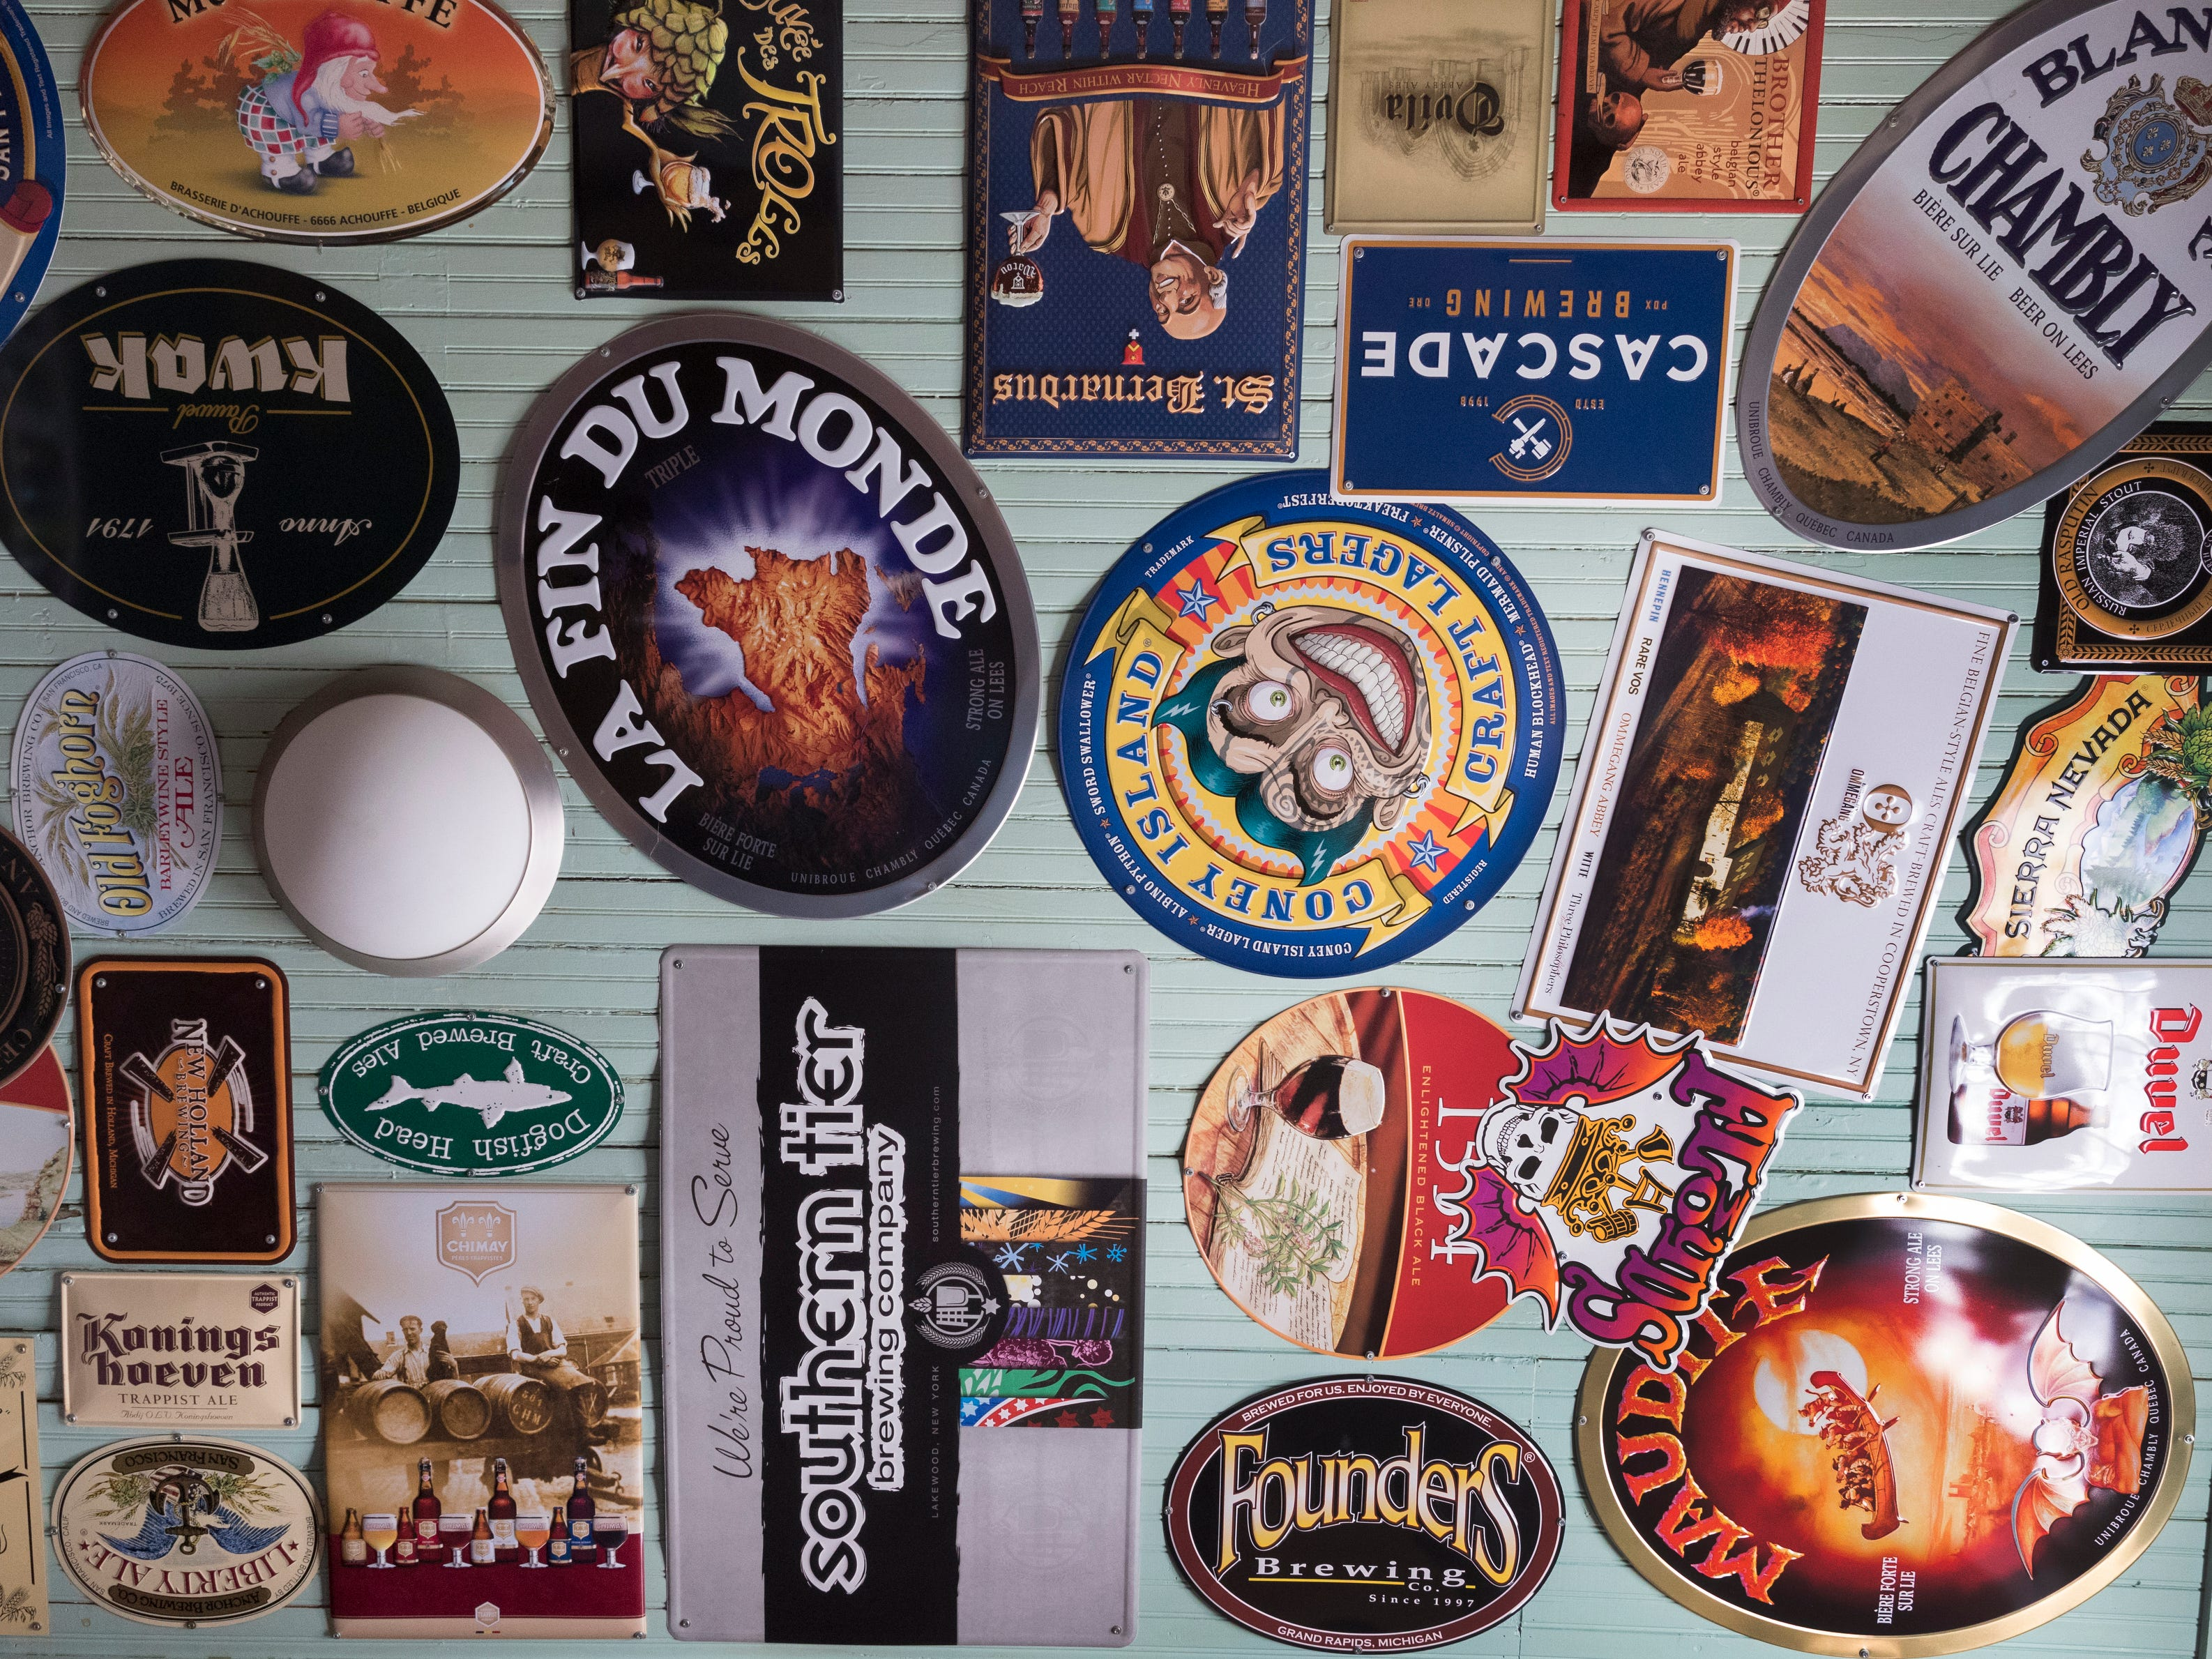 A ceiling covered with beer signs is shown Tuesday, April 9, 2019 at the soon-to-open Trailer Park Tavern, 2989 S. Kinnickinnic Ave. in Milwaukee, Wis. The bar, owned by Jordon (CQ) Bledsoe, is to open in May.